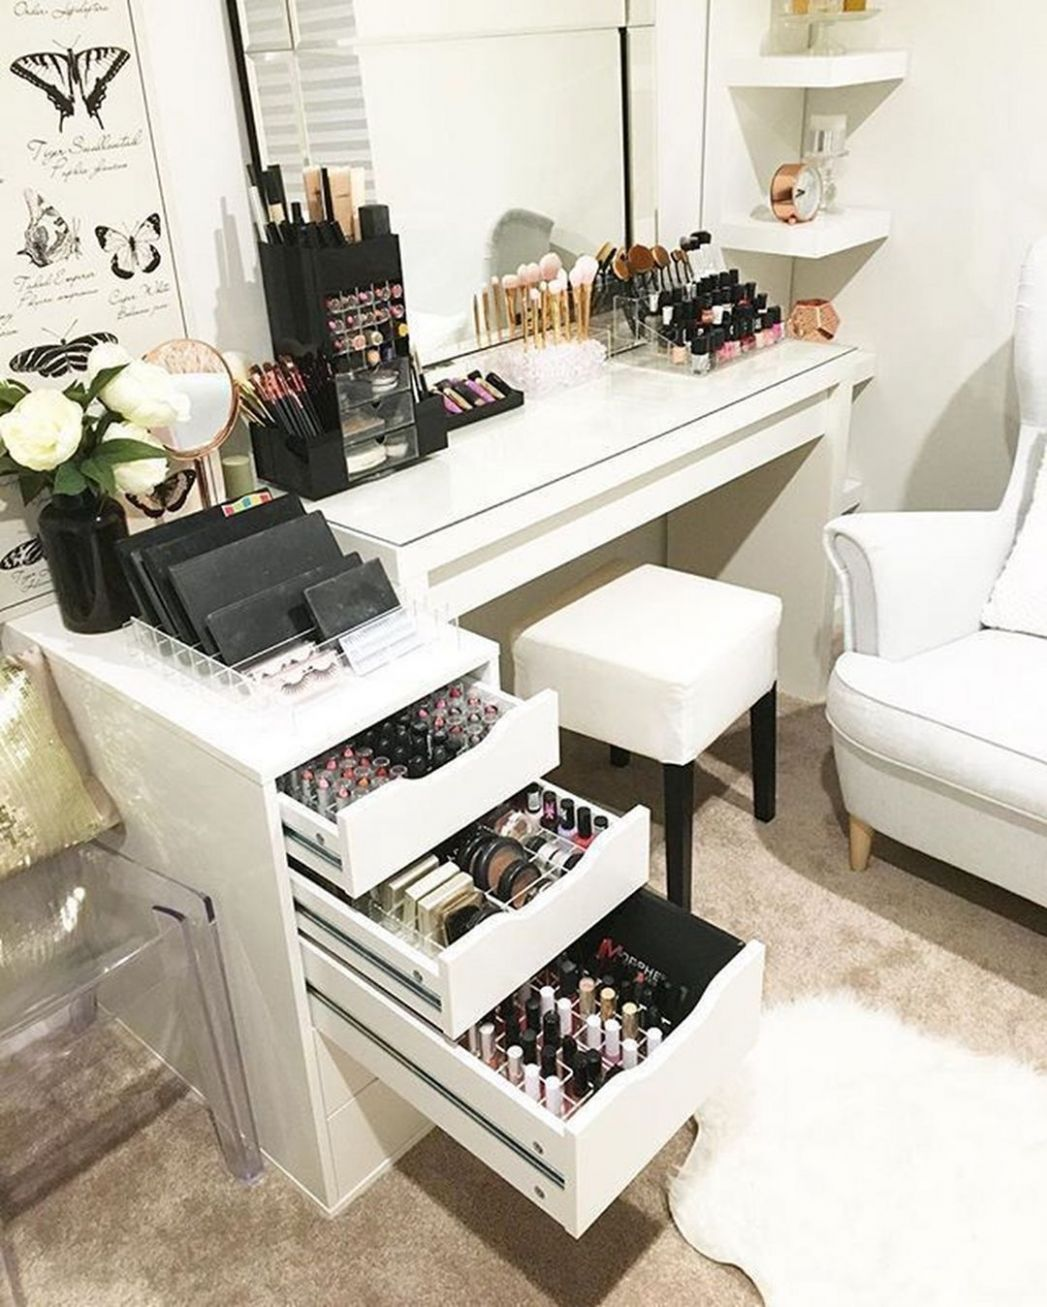 11 Best And Beautiful Organizing Makeup Equipment Design Ideas in ..